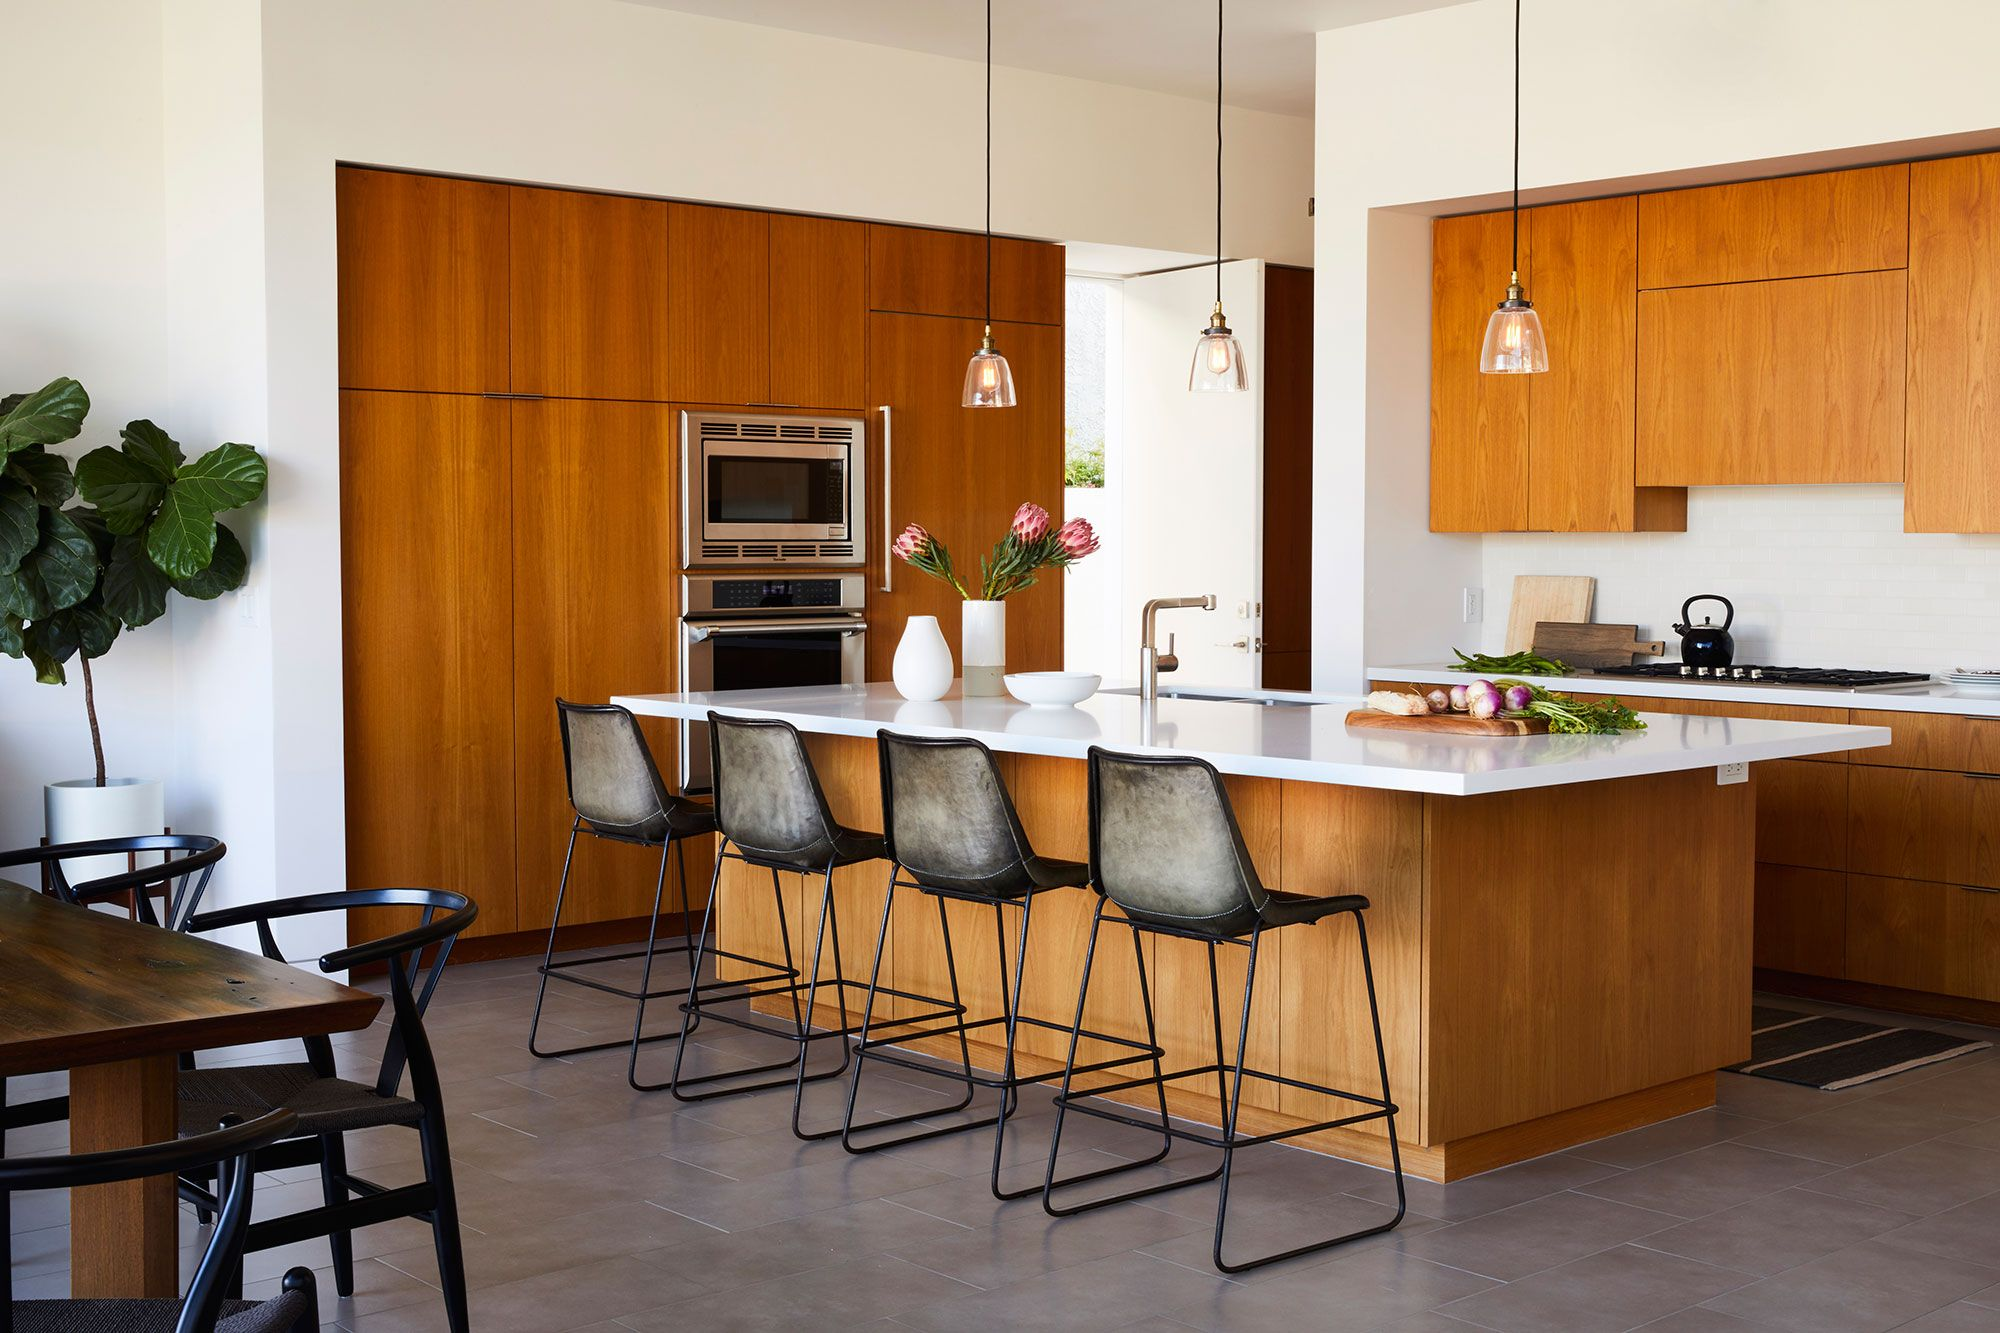 10 Modern Cabinets That\u0027ll Freshen Up Your Kitchen & 70 Kitchen Design \u0026 Remodeling Ideas - Pictures of Beautiful Kitchens